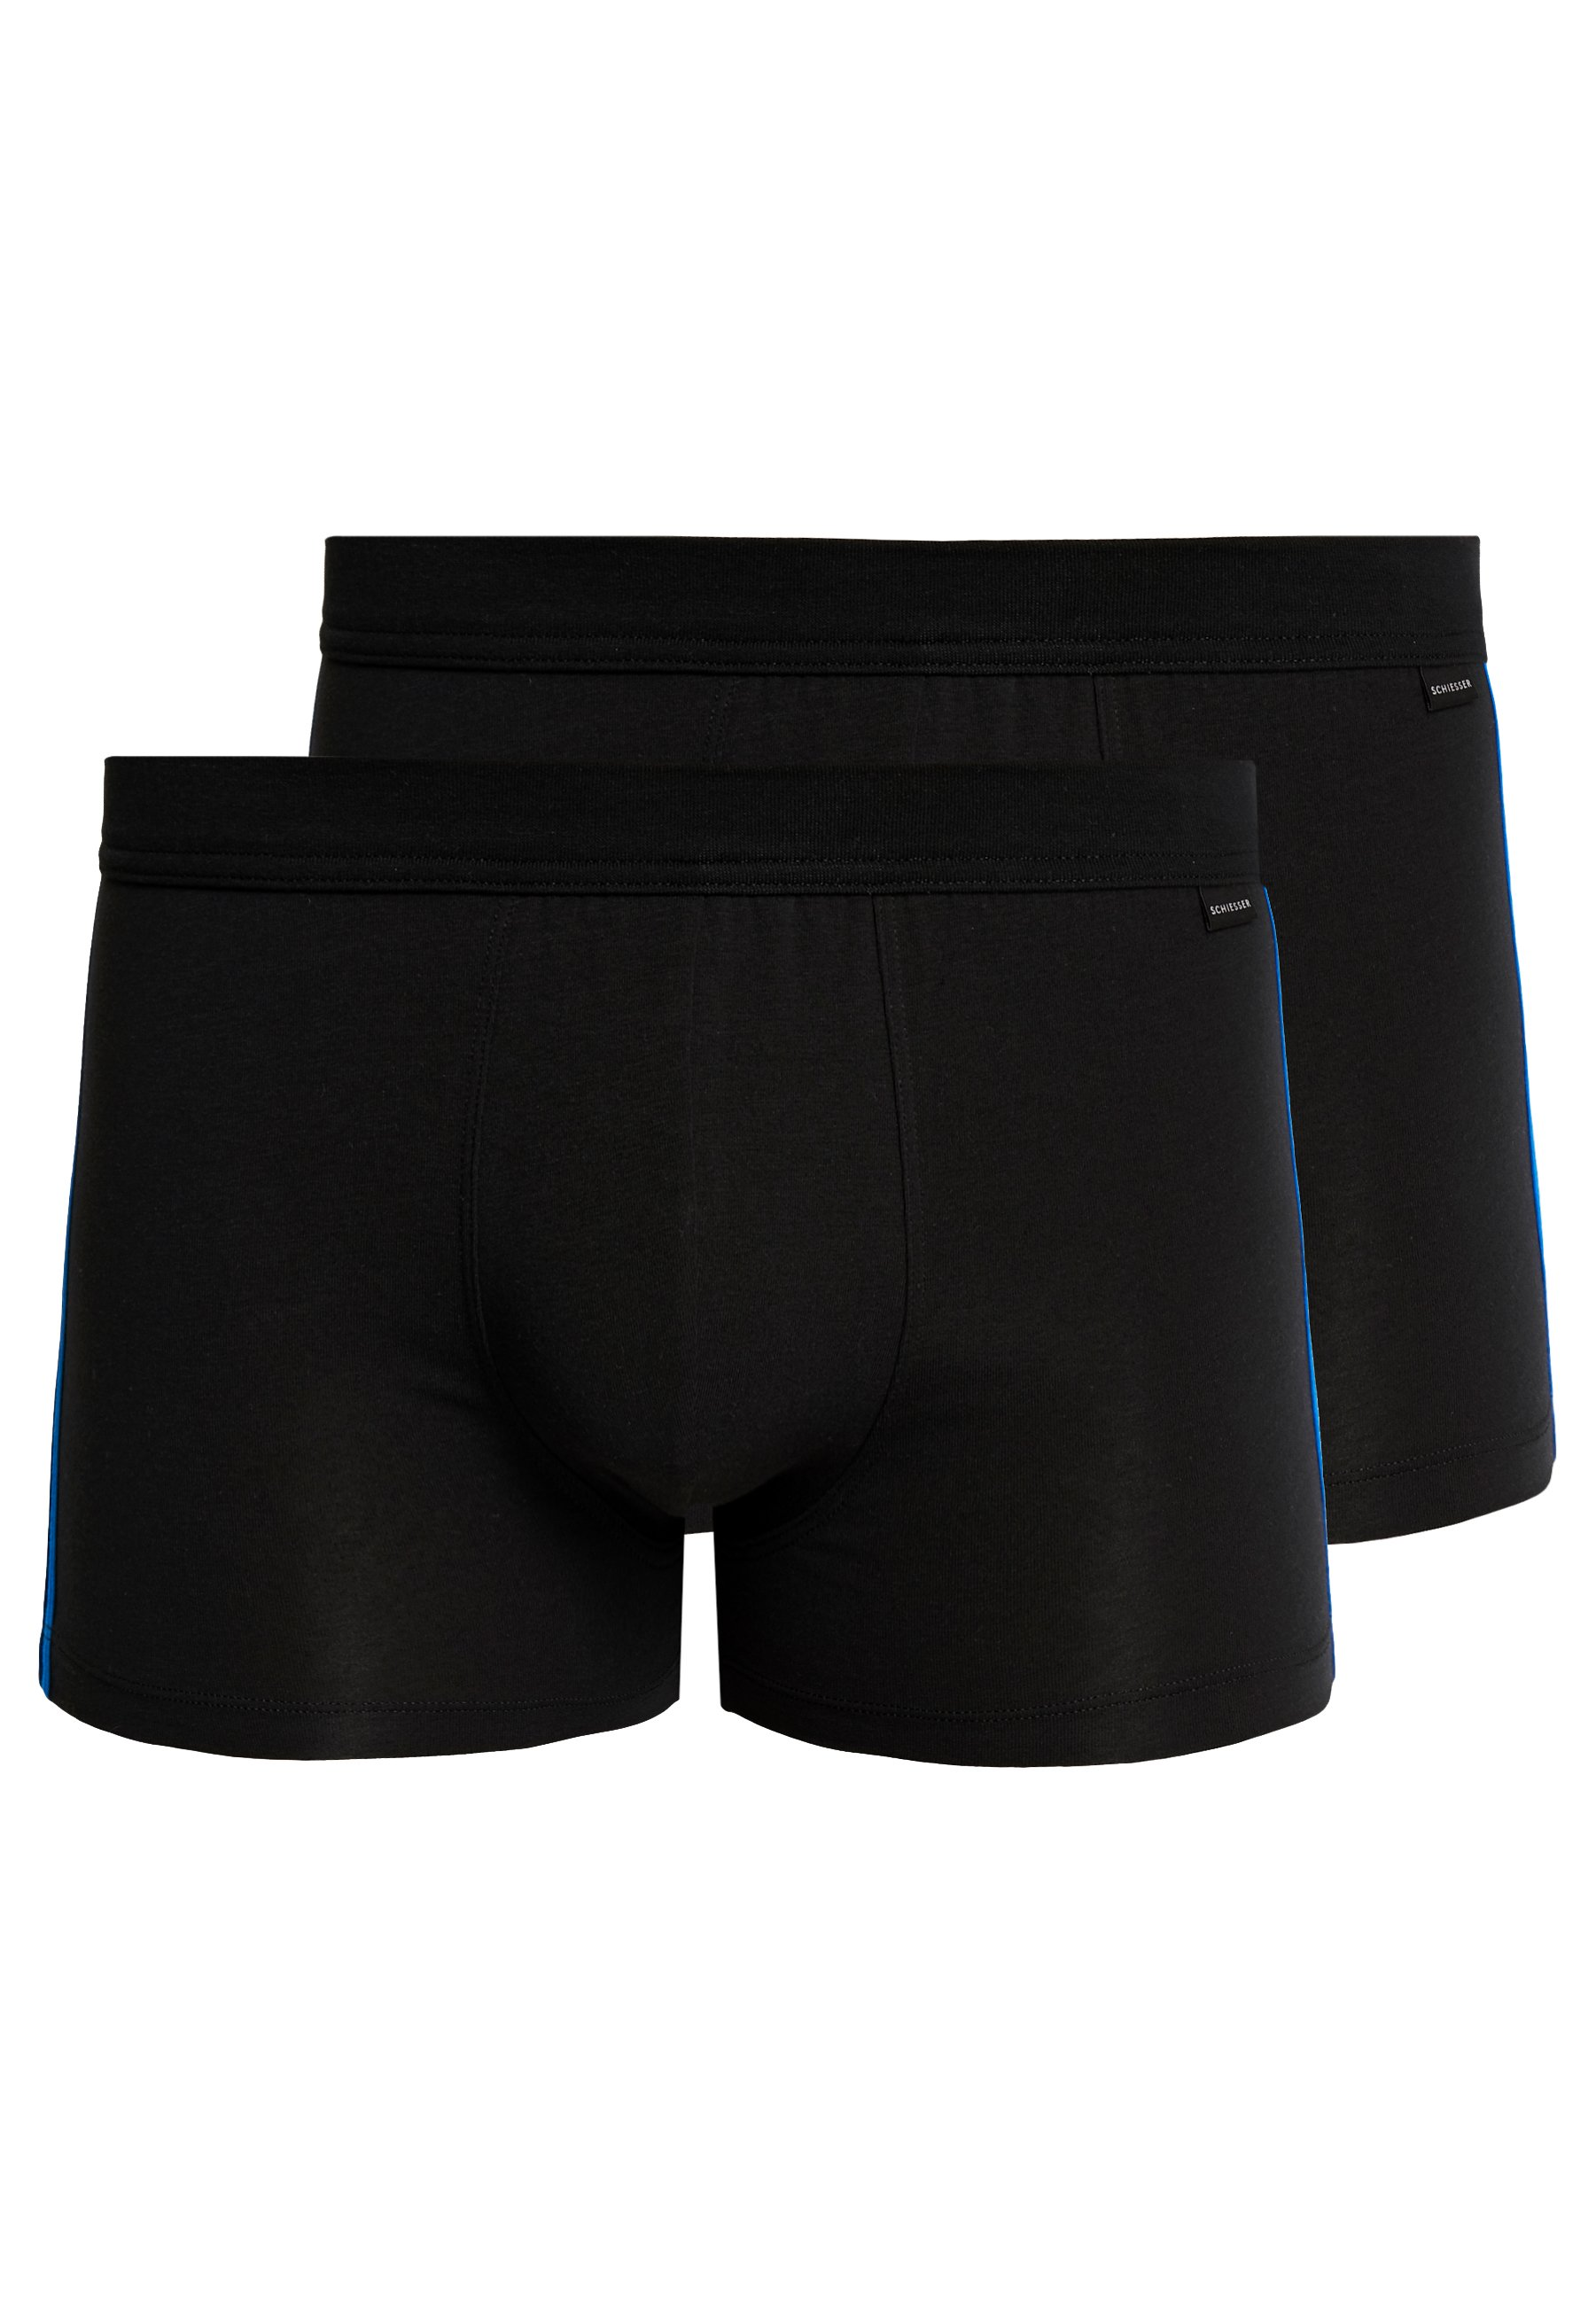 Schiesser Essentials 2 PackShorty blue Black dxhtsQCr